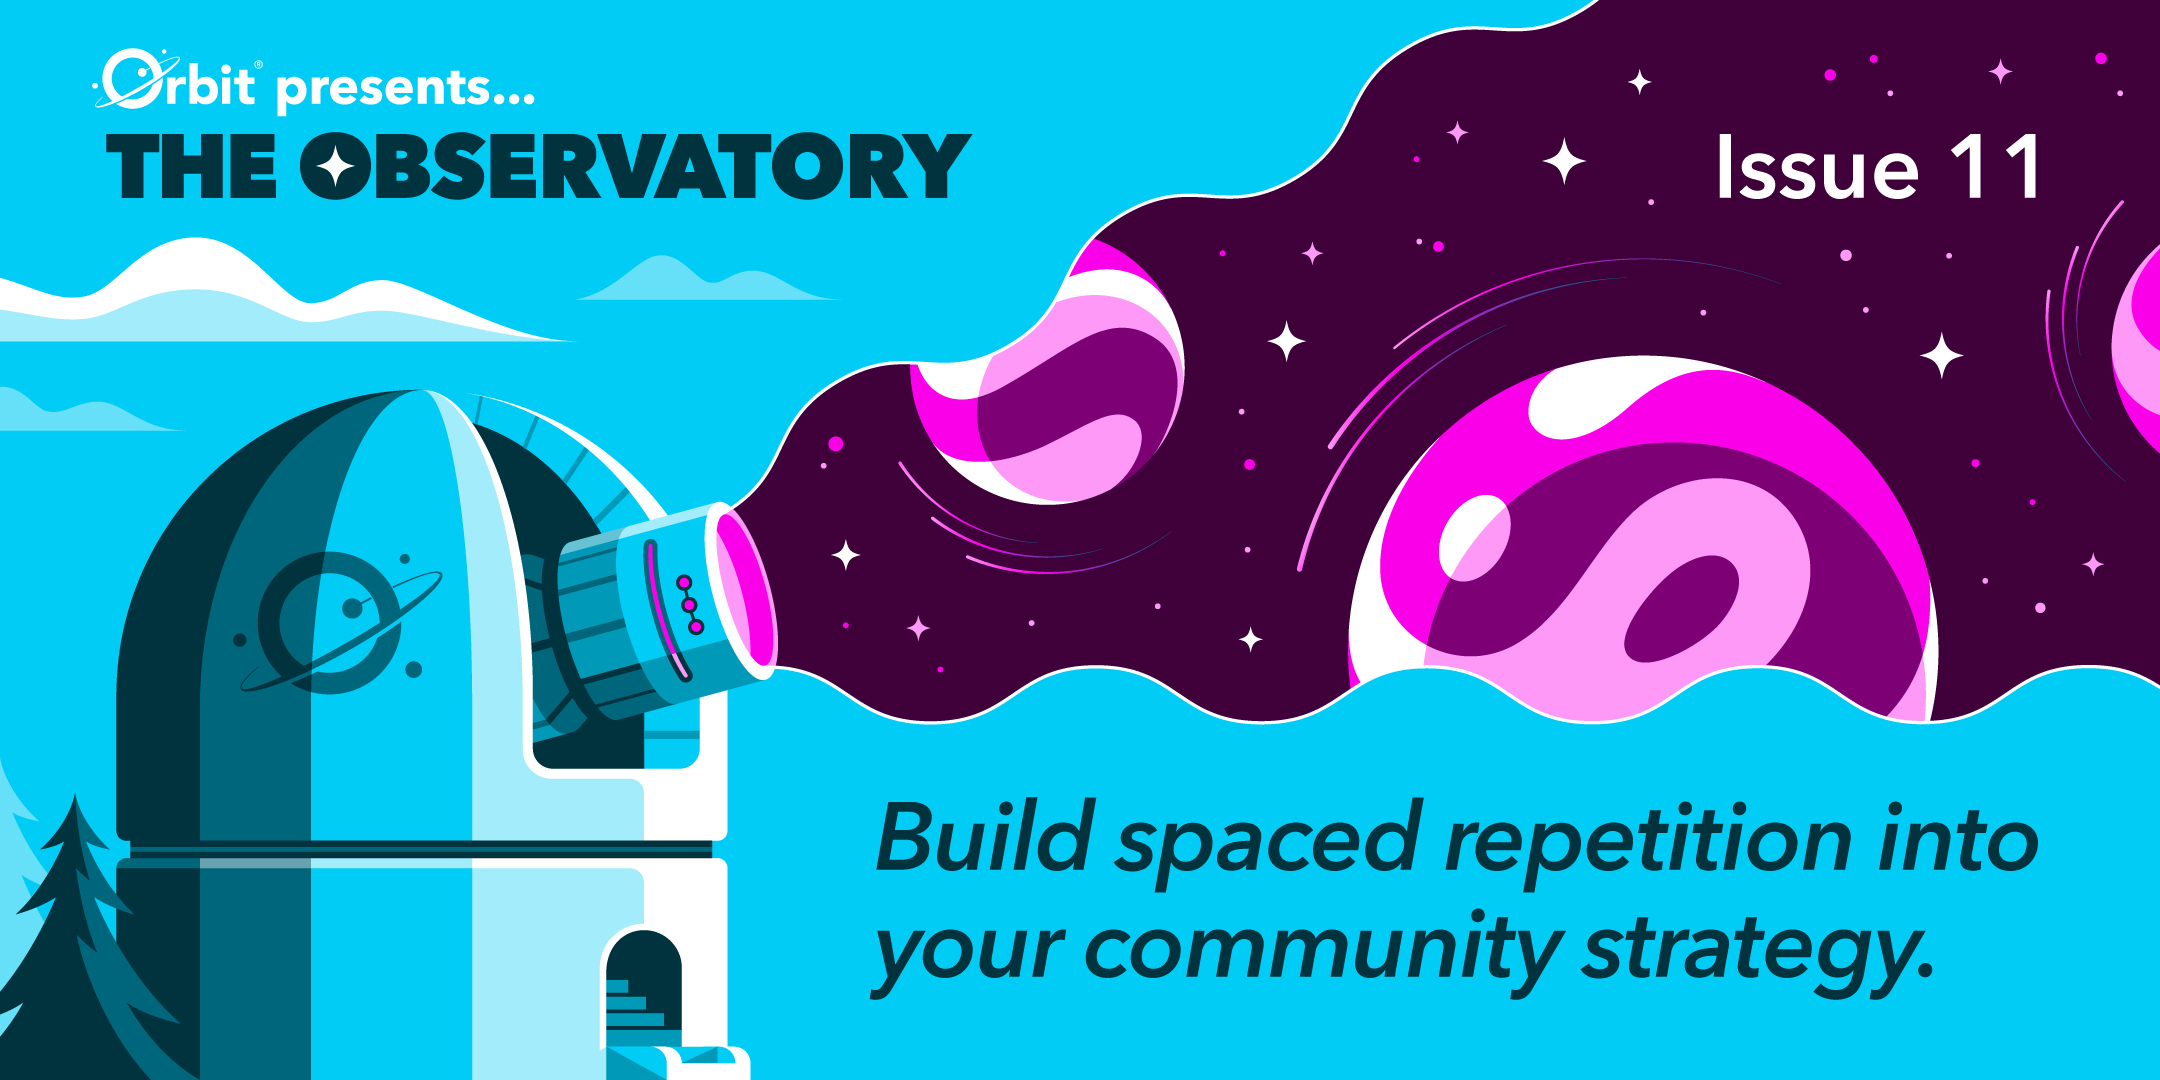 Build spaced repetition into your community